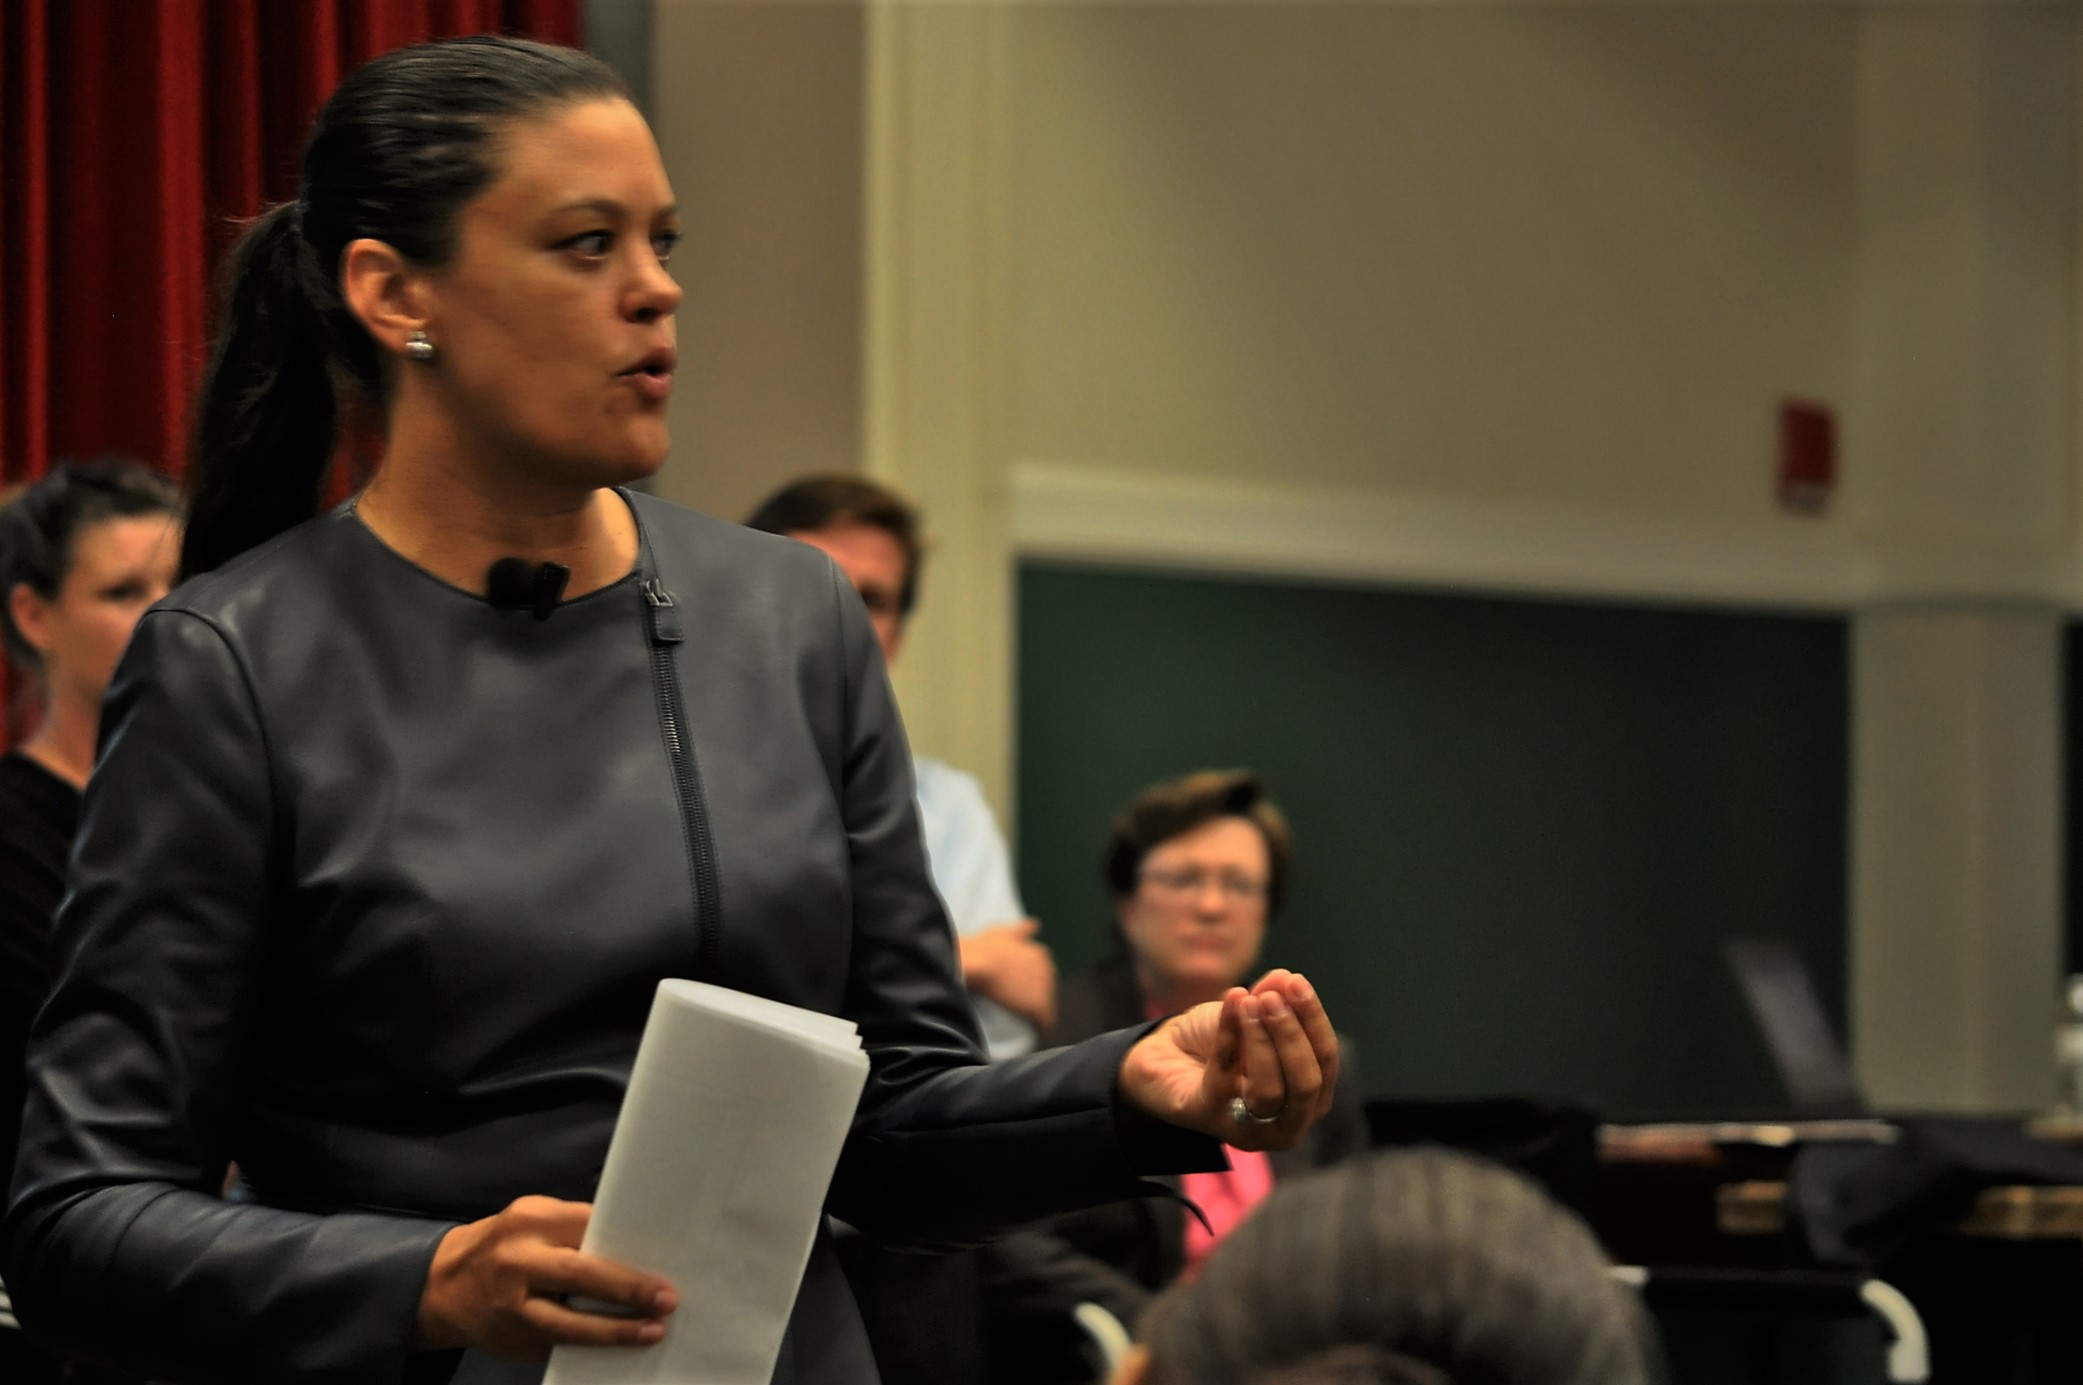 The Atlanta Board of Education has decided not to renew Superintendent Dr. Meria Carstarphen's contract with the district. The process for searching for a new superintendent will begin. Her term will expire June 30, 2020.